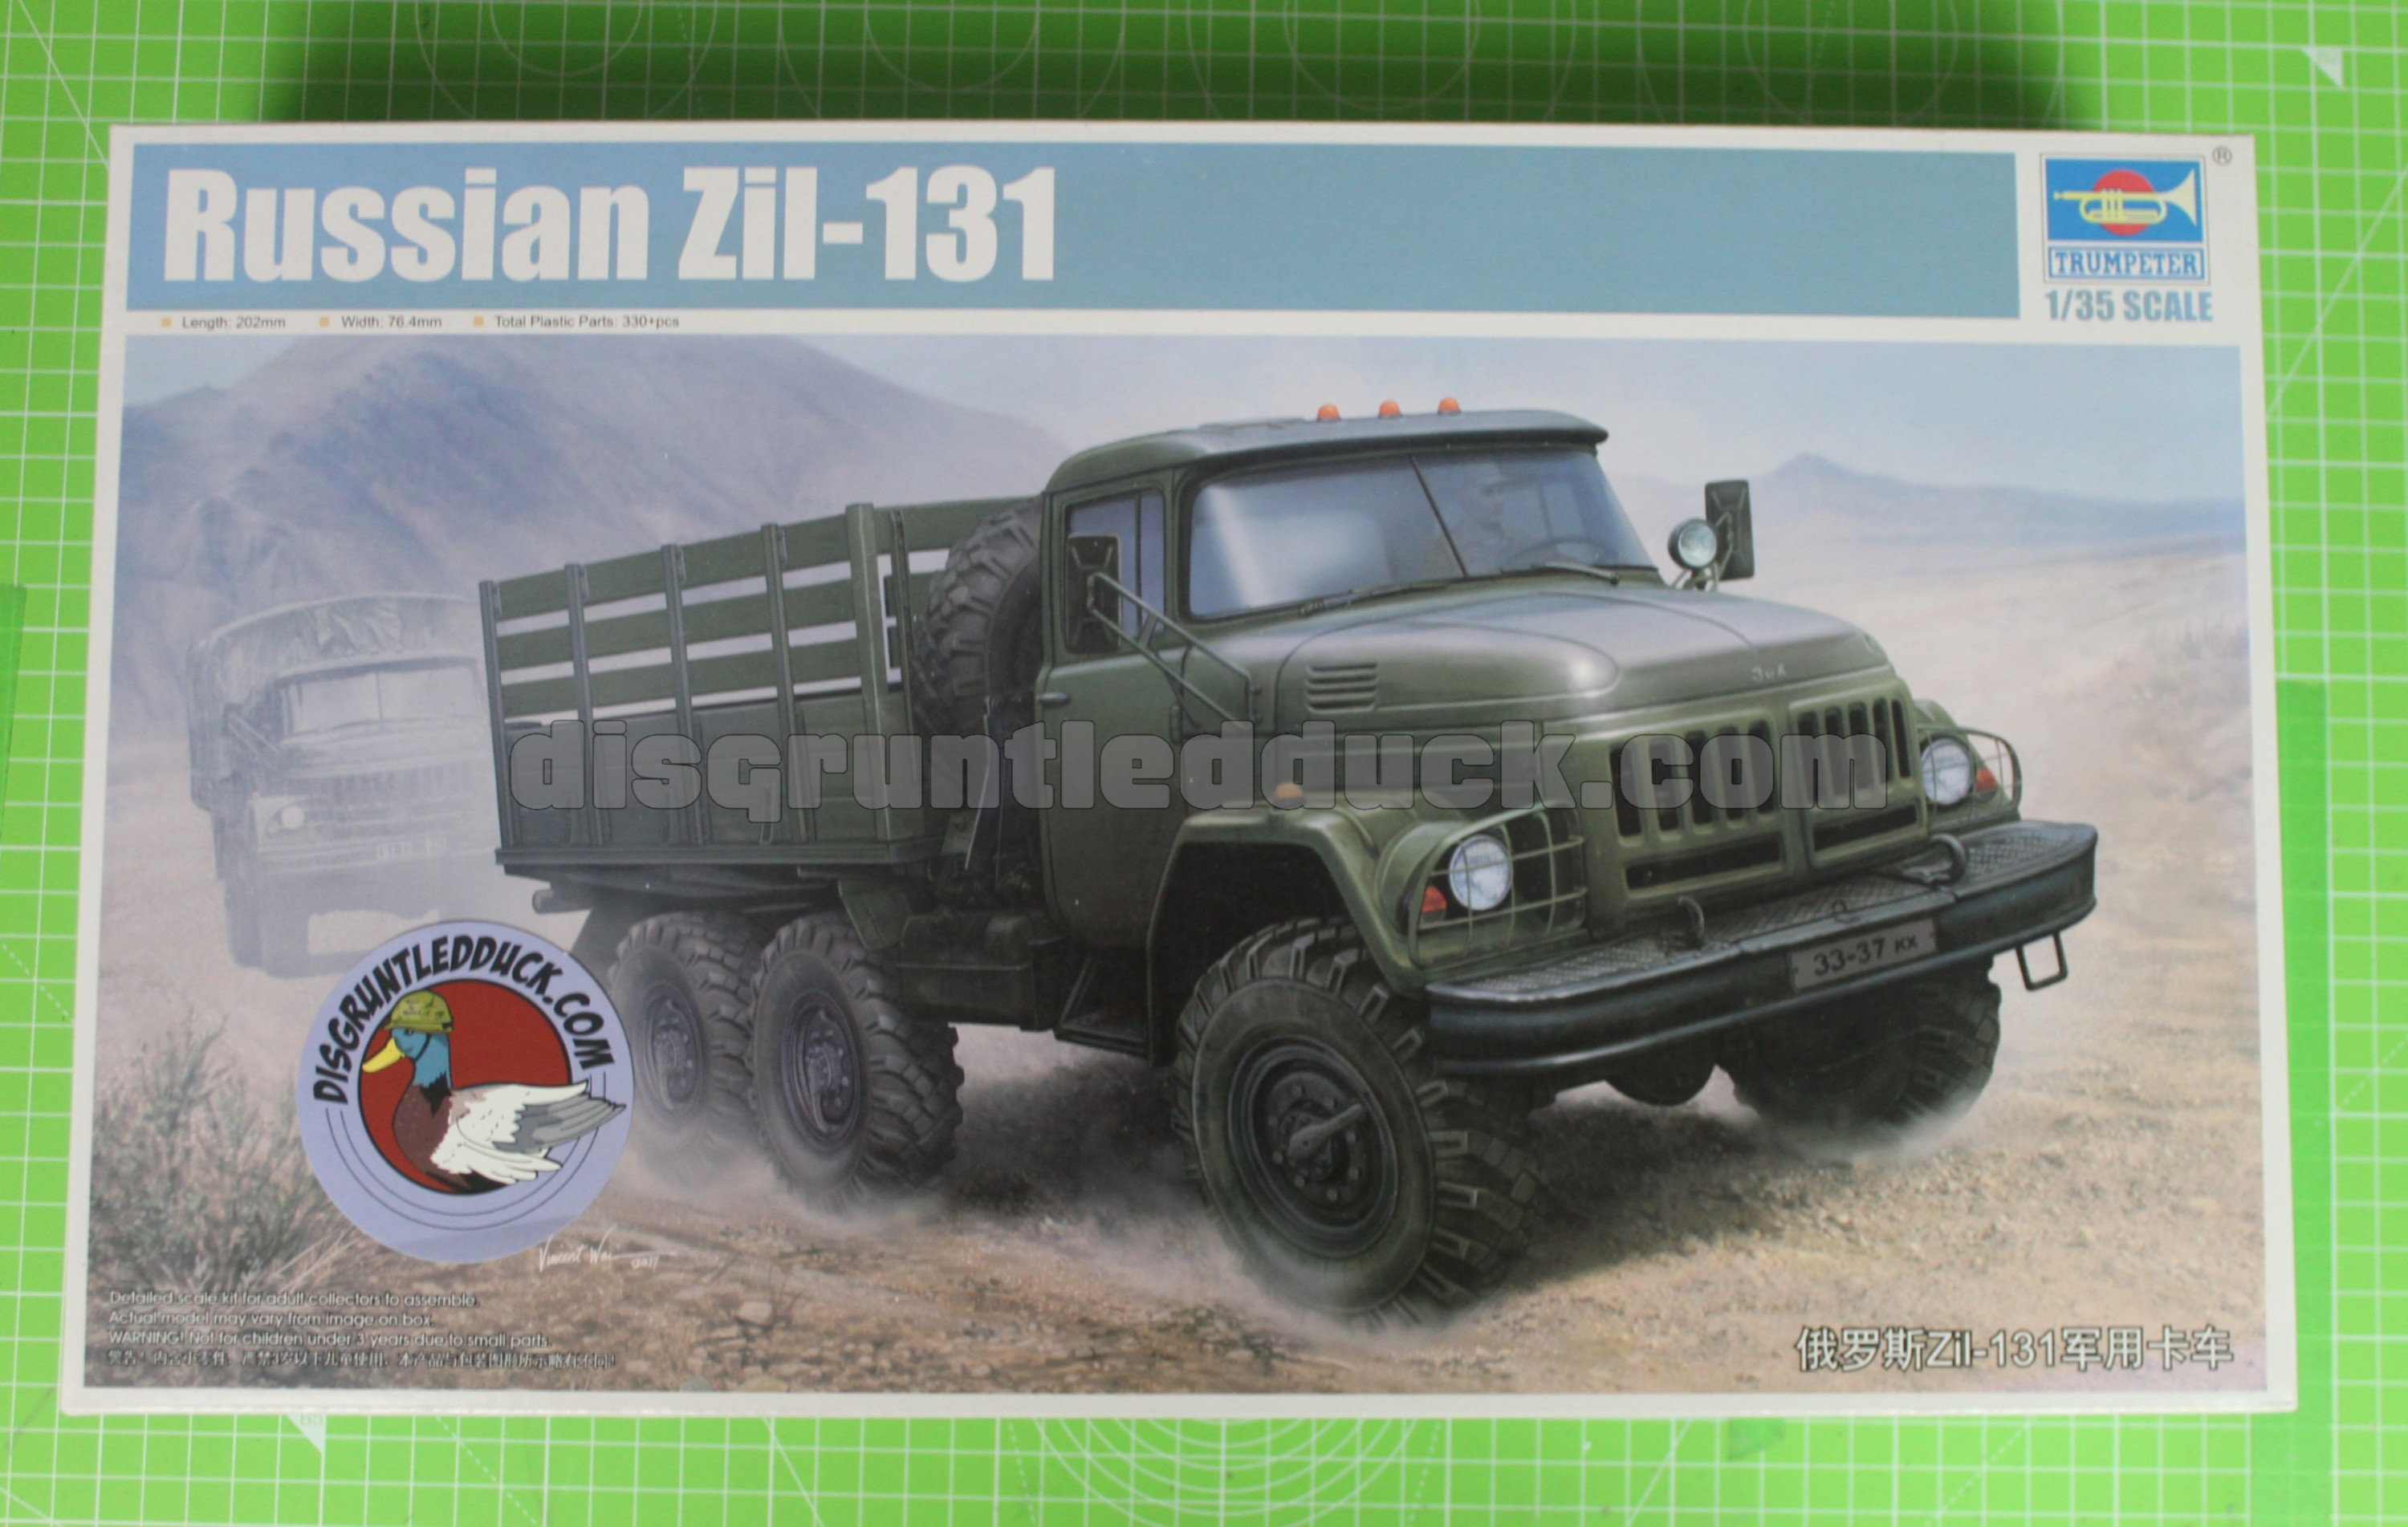 Trumpeter 1/35th Russian Zil-131 Unboxing And Review Video